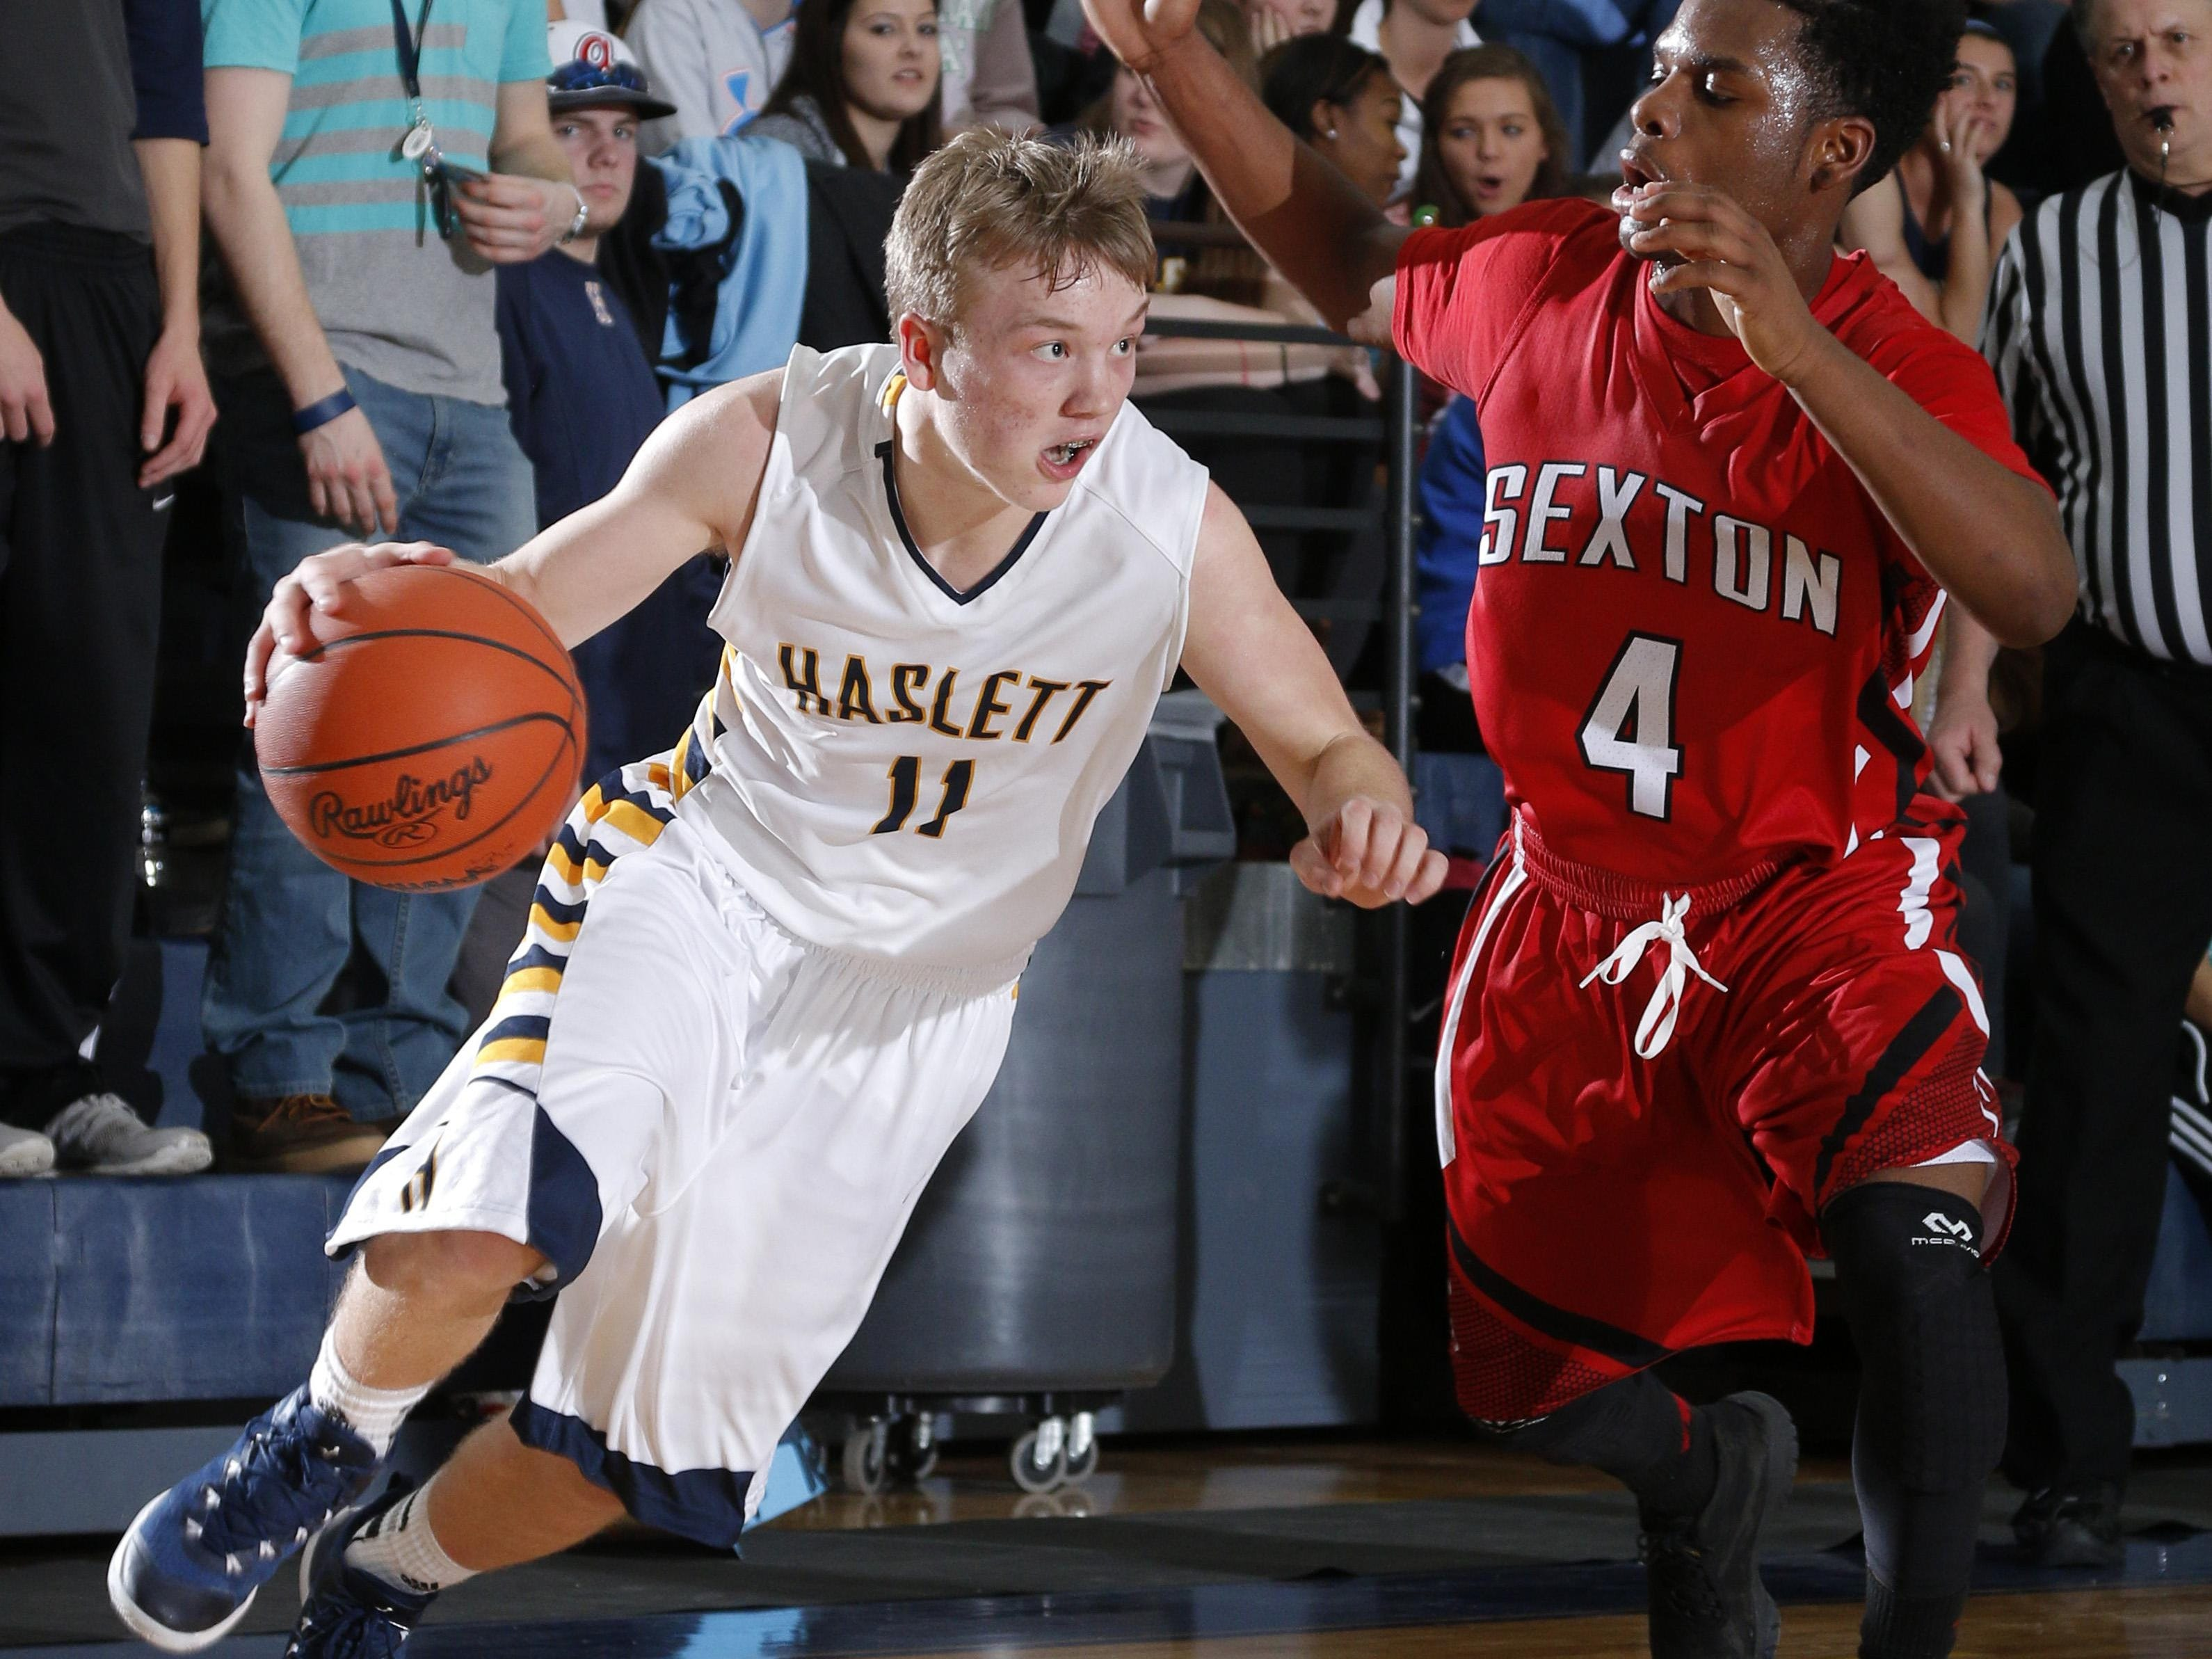 Haslett's Brandon Allen, left, has a scholarship offer from Long Beach State but is hoping to earn more.